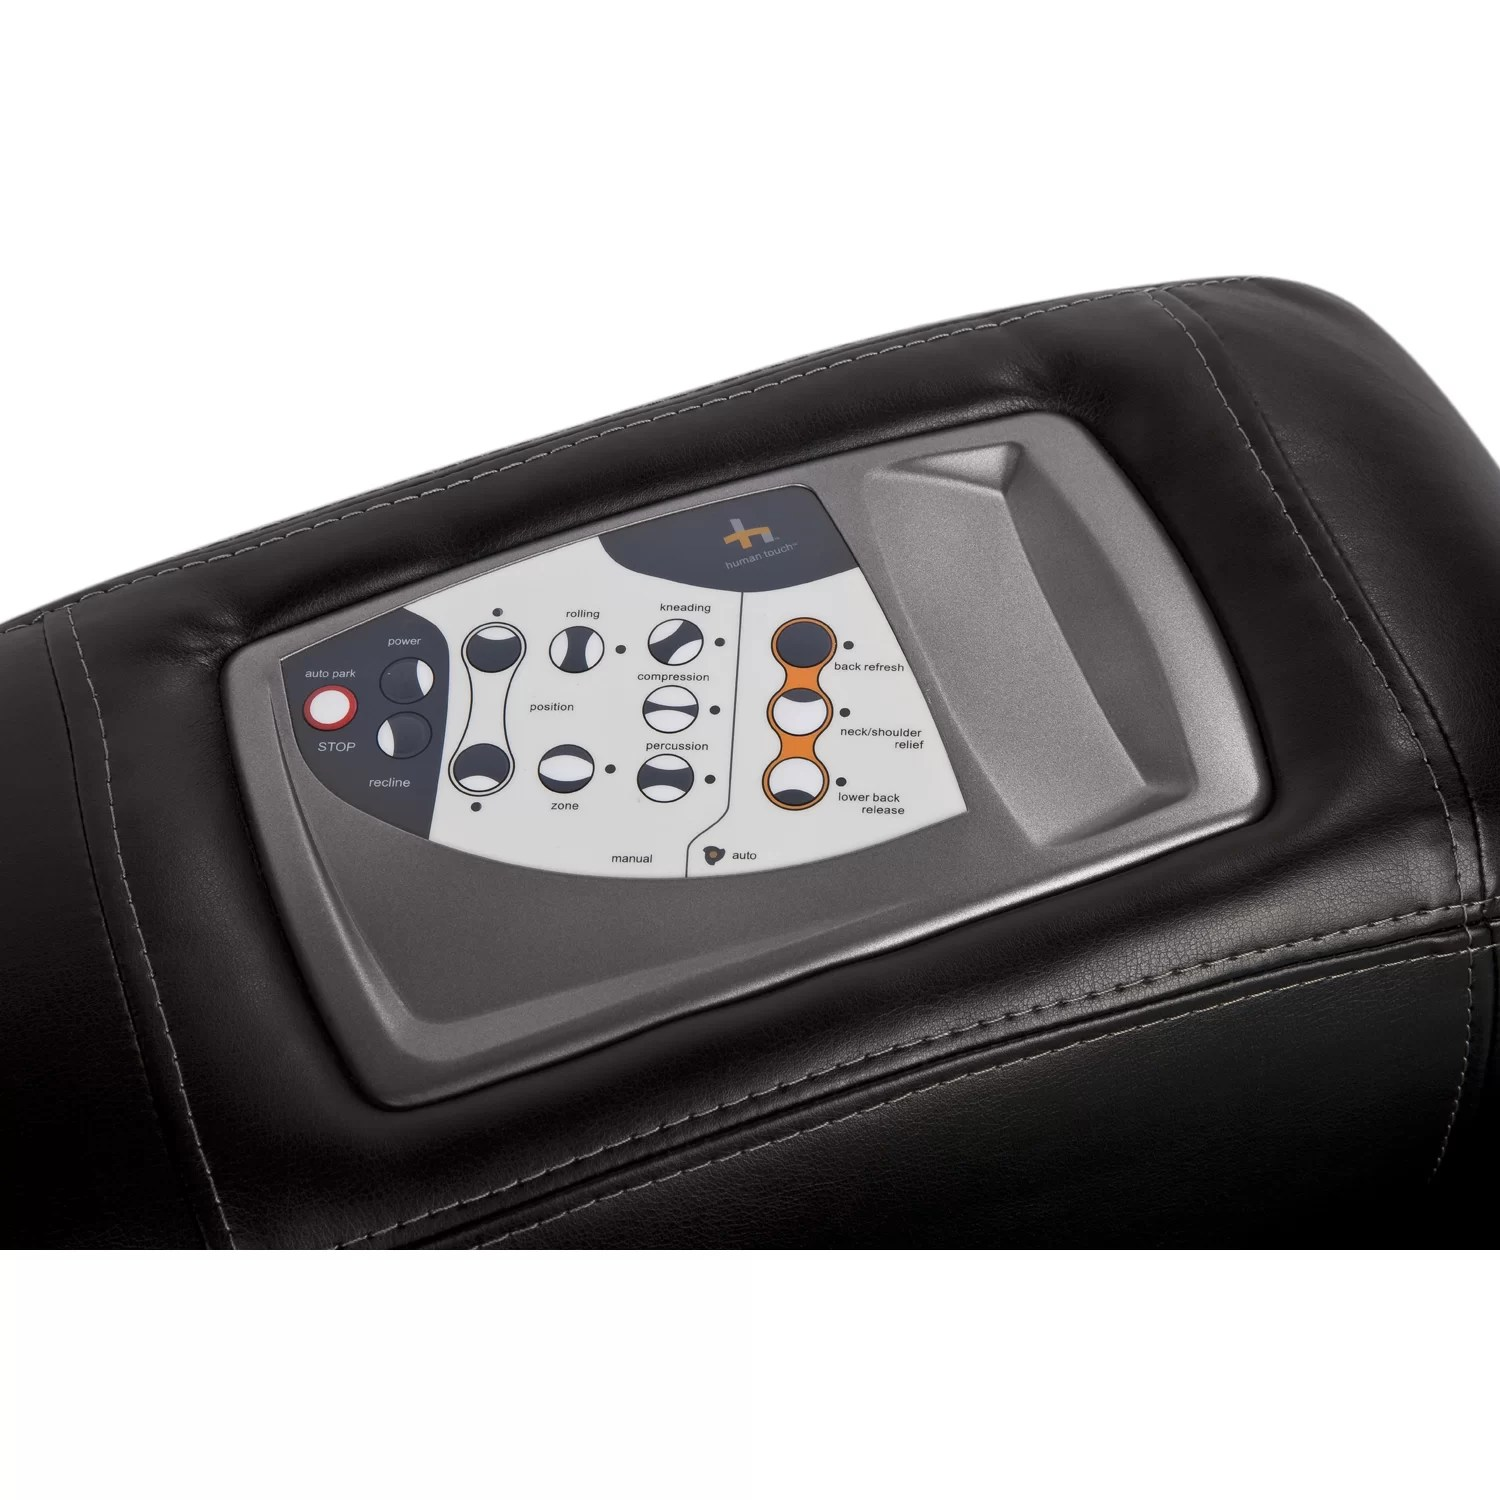 ijoy 100 massage chair 2 person recliner human touch 2580 premium robotic